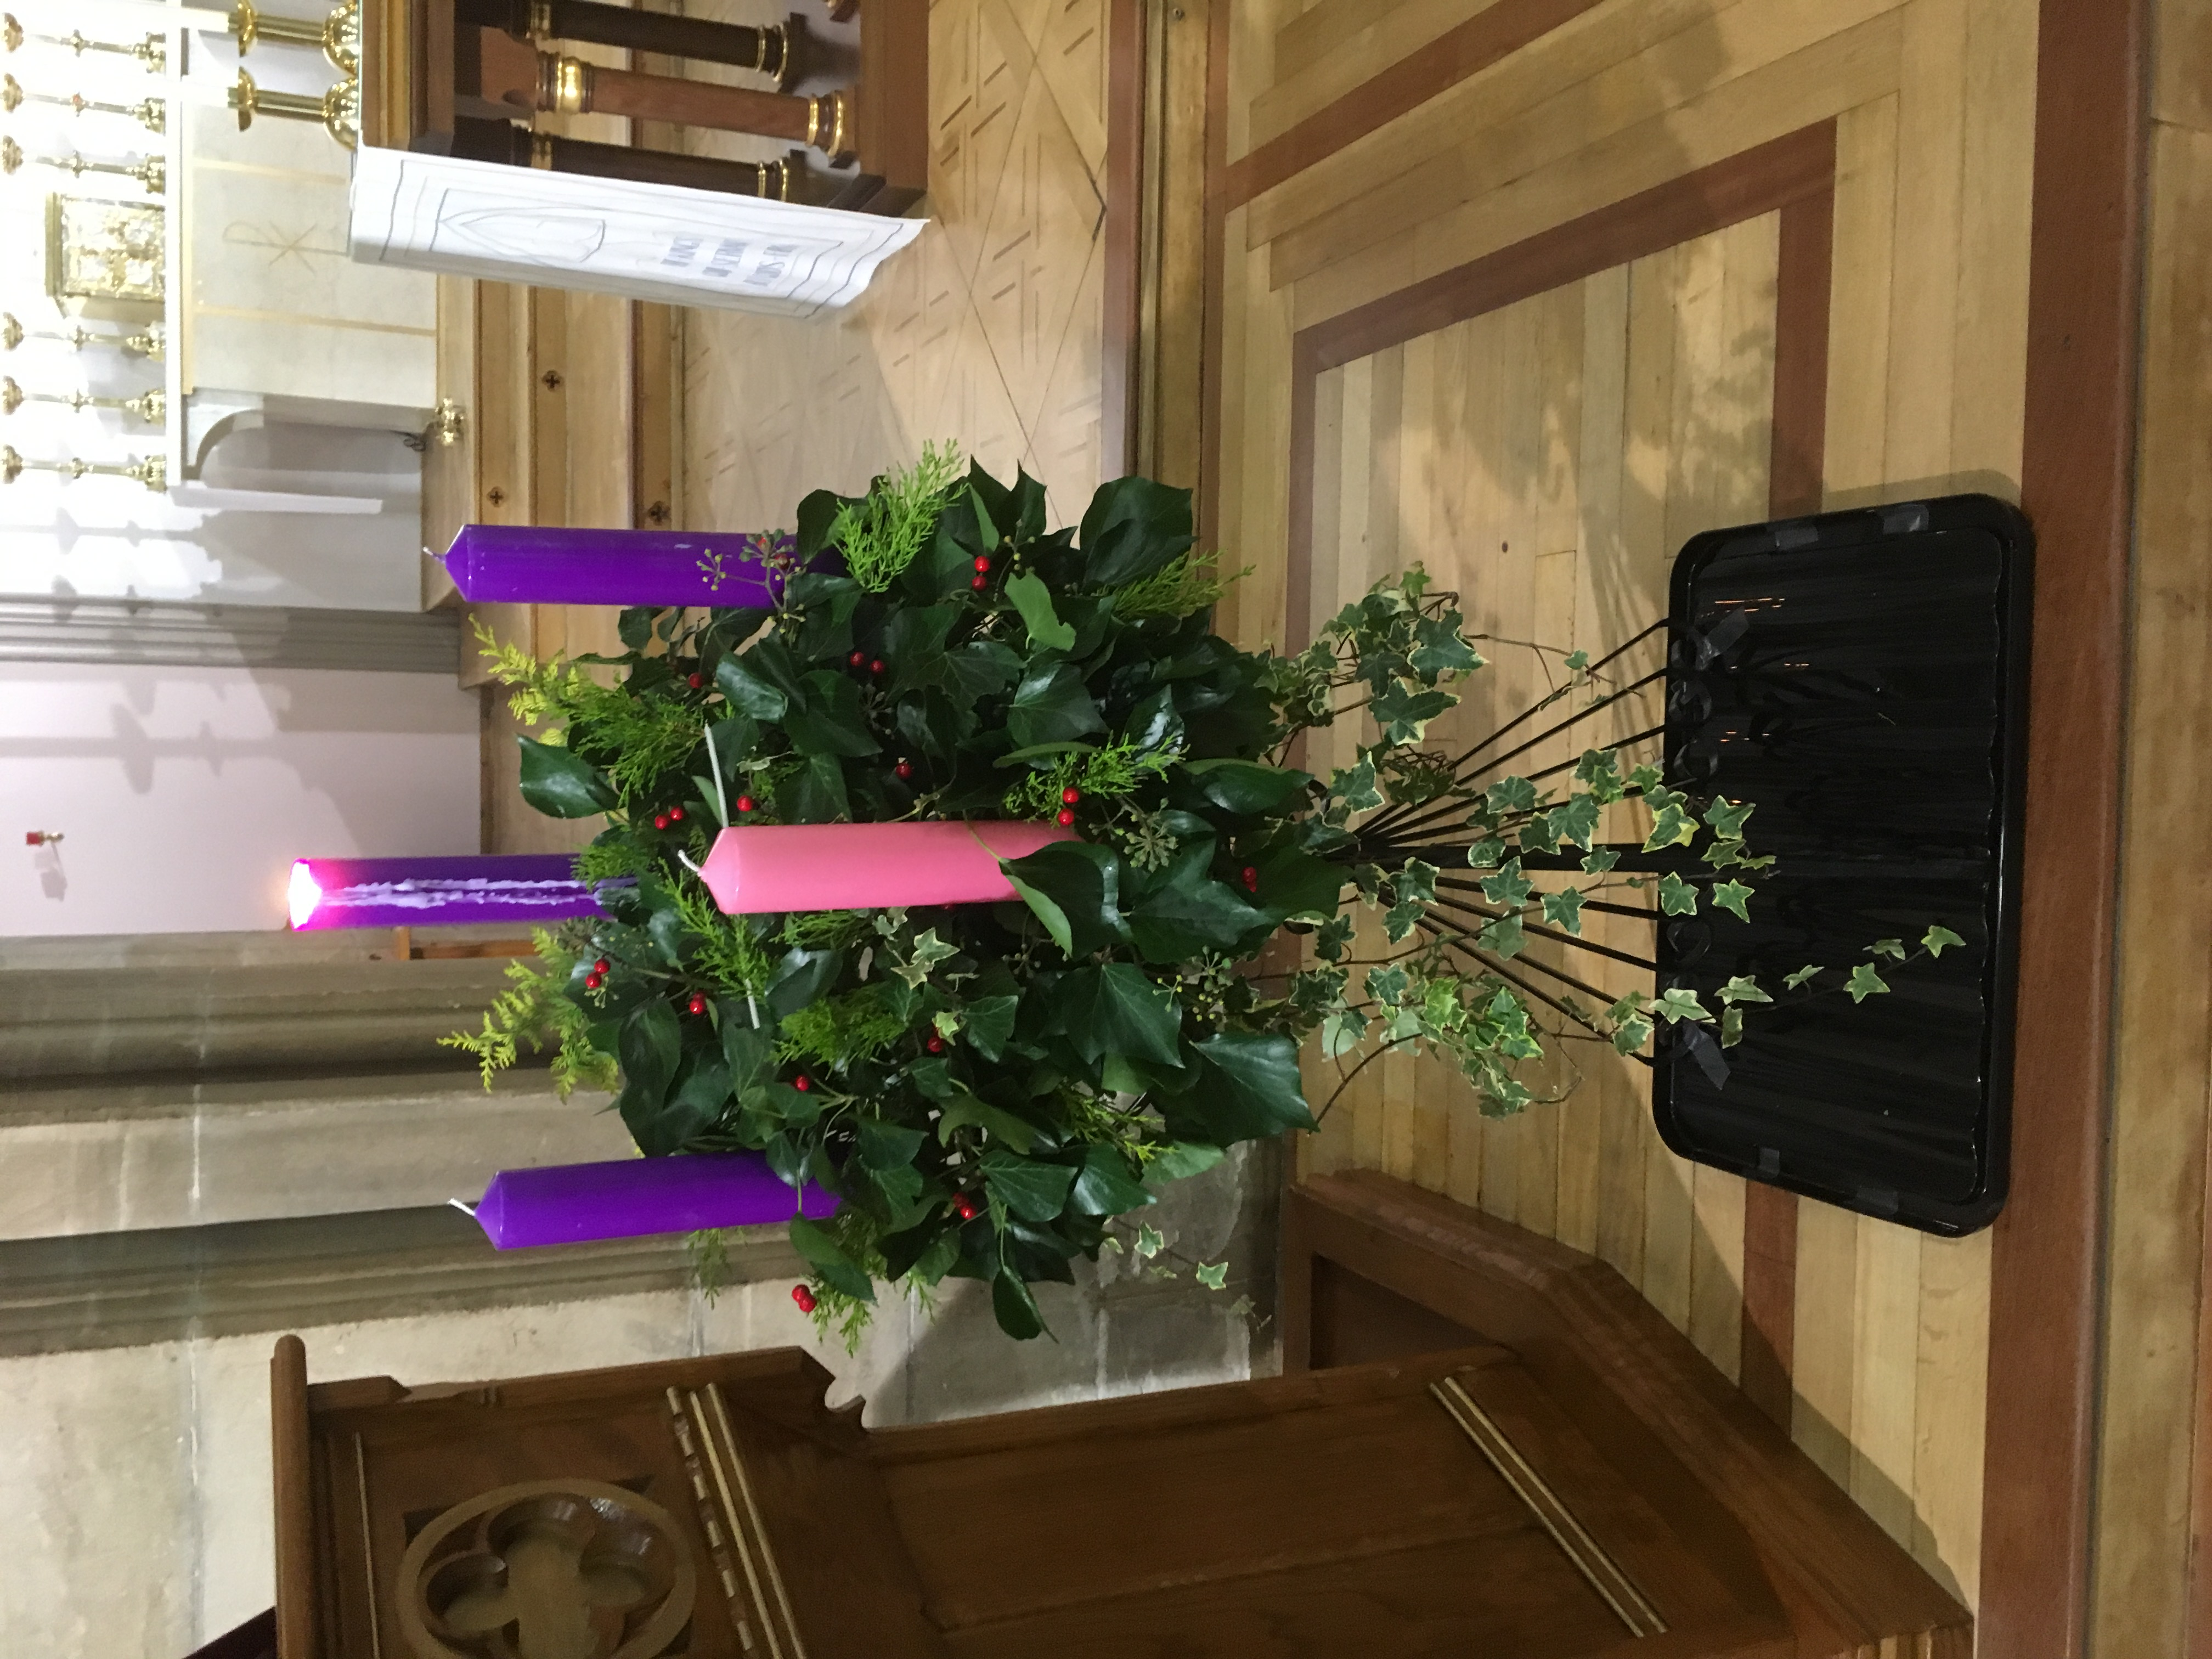 Advent Wreath with the Prophet's candle lit